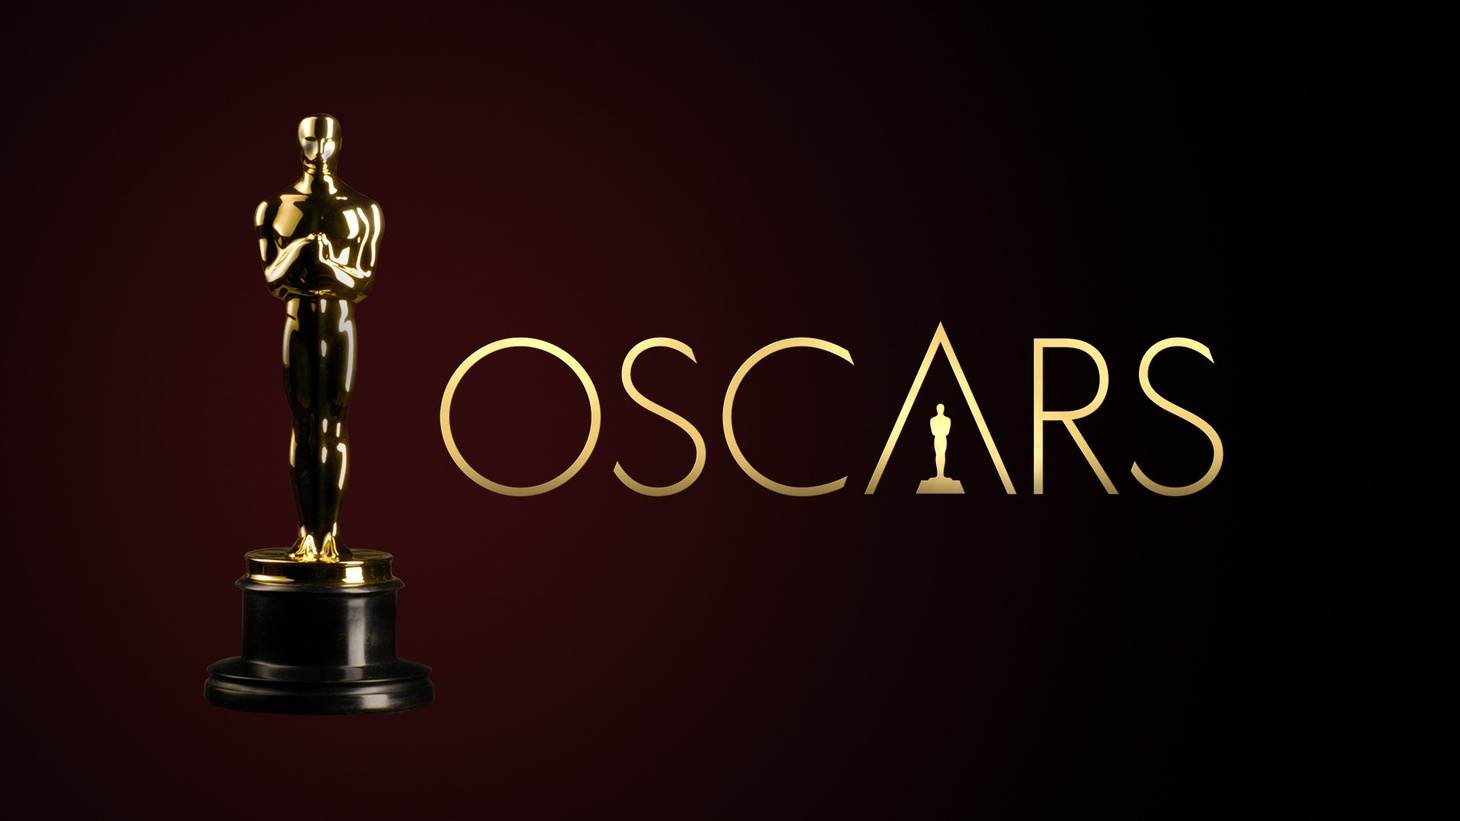 This year's awards season is moving forward with virtual campaigns, festivals and ceremonies.